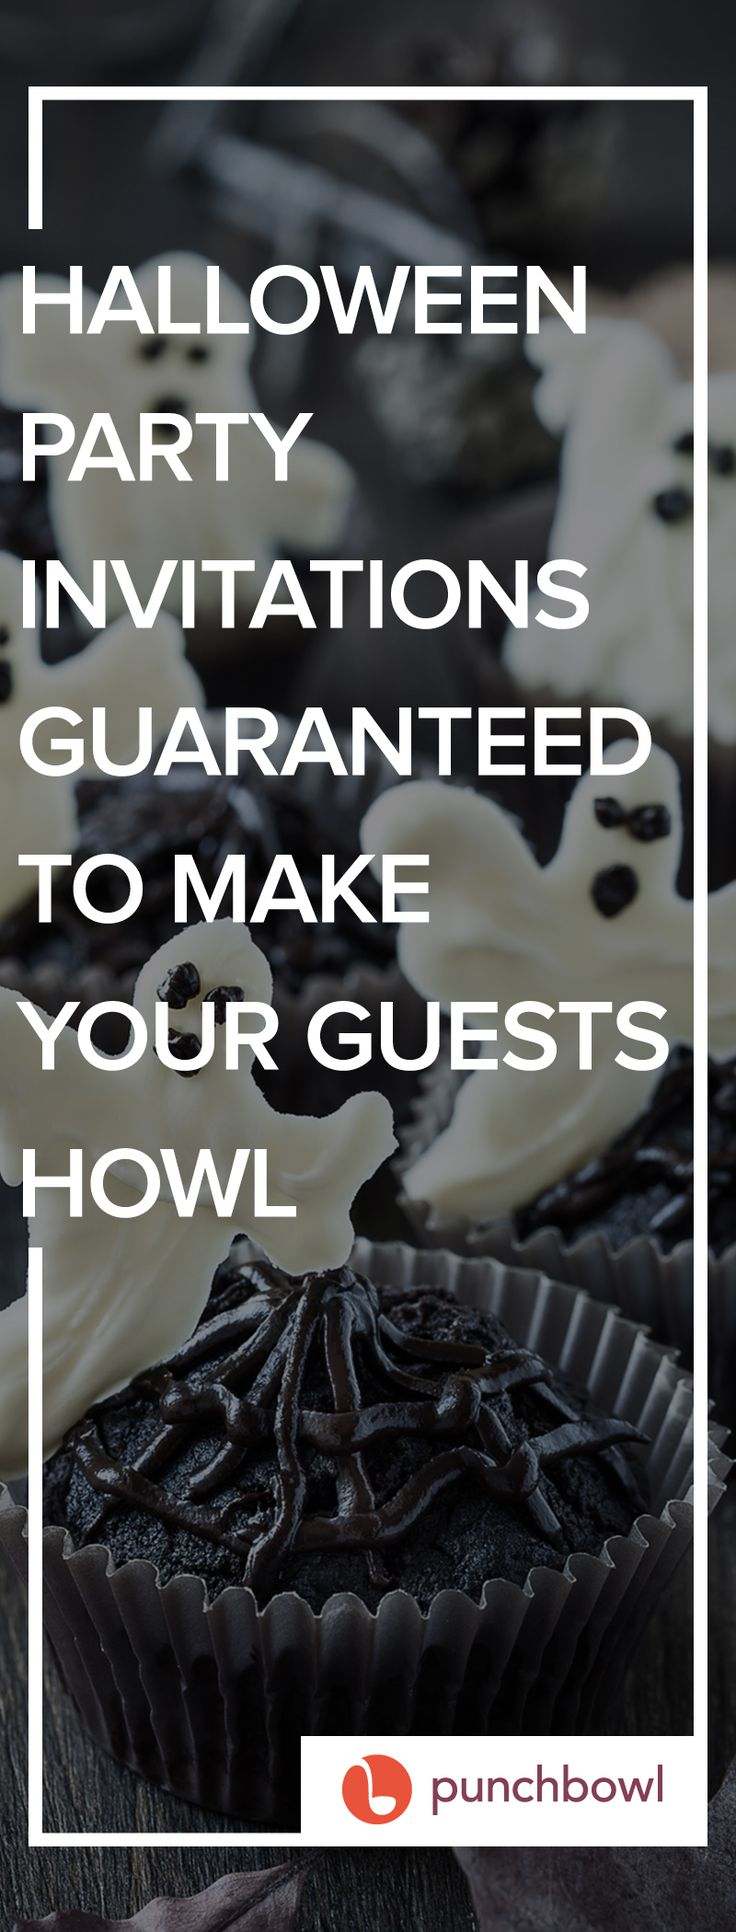 Paper invites are too formal, and emails are too casual. Get it just right with online invitations from Punchbowl. We've got everything you need for your Halloween party.      https://www.punchbowl.com/online-invitations/category/23?utm_source=Pinterest&utm_medium=54.6P